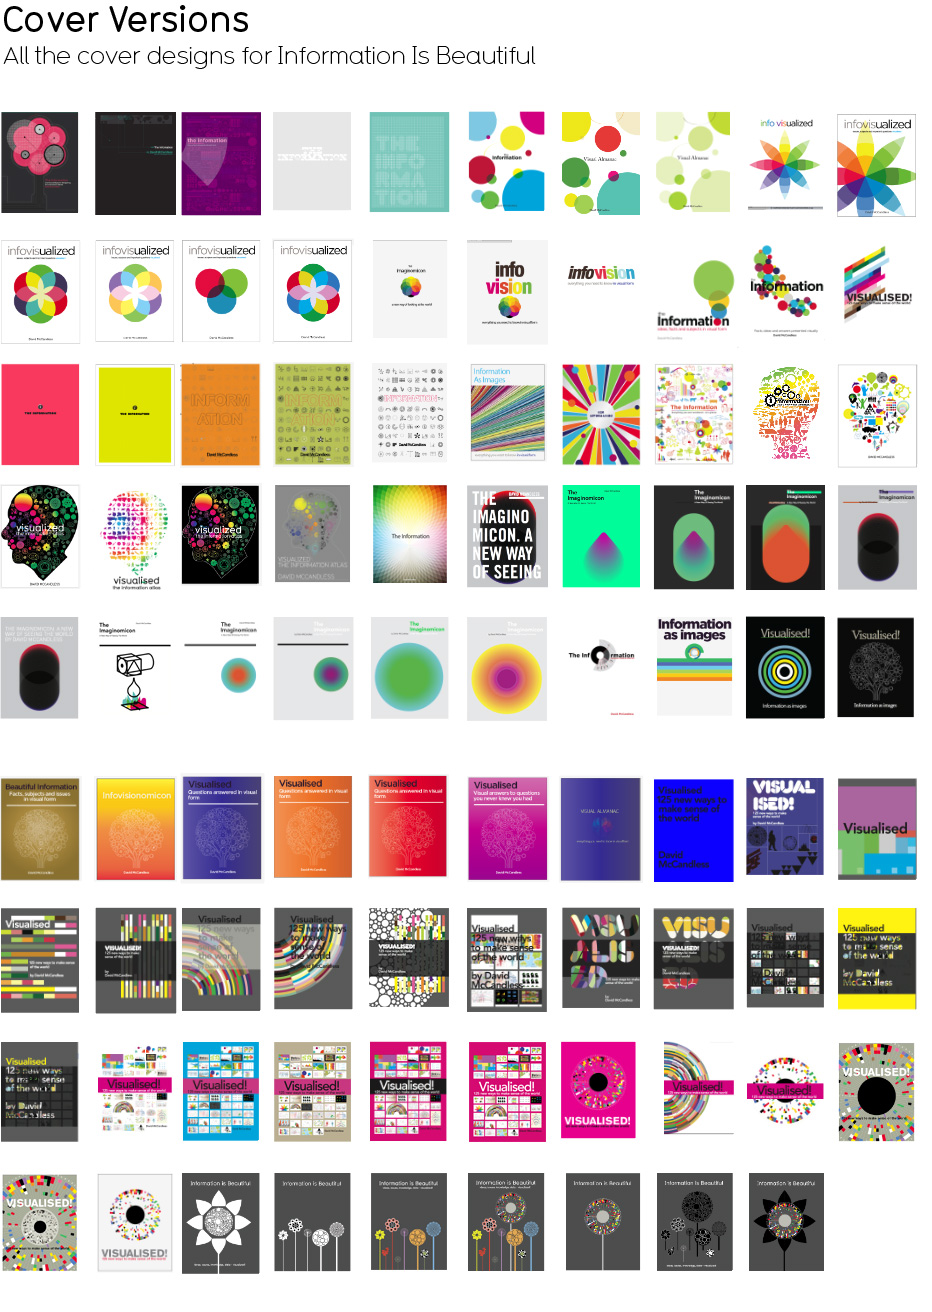 Cover Versions | Information Is Beautiful